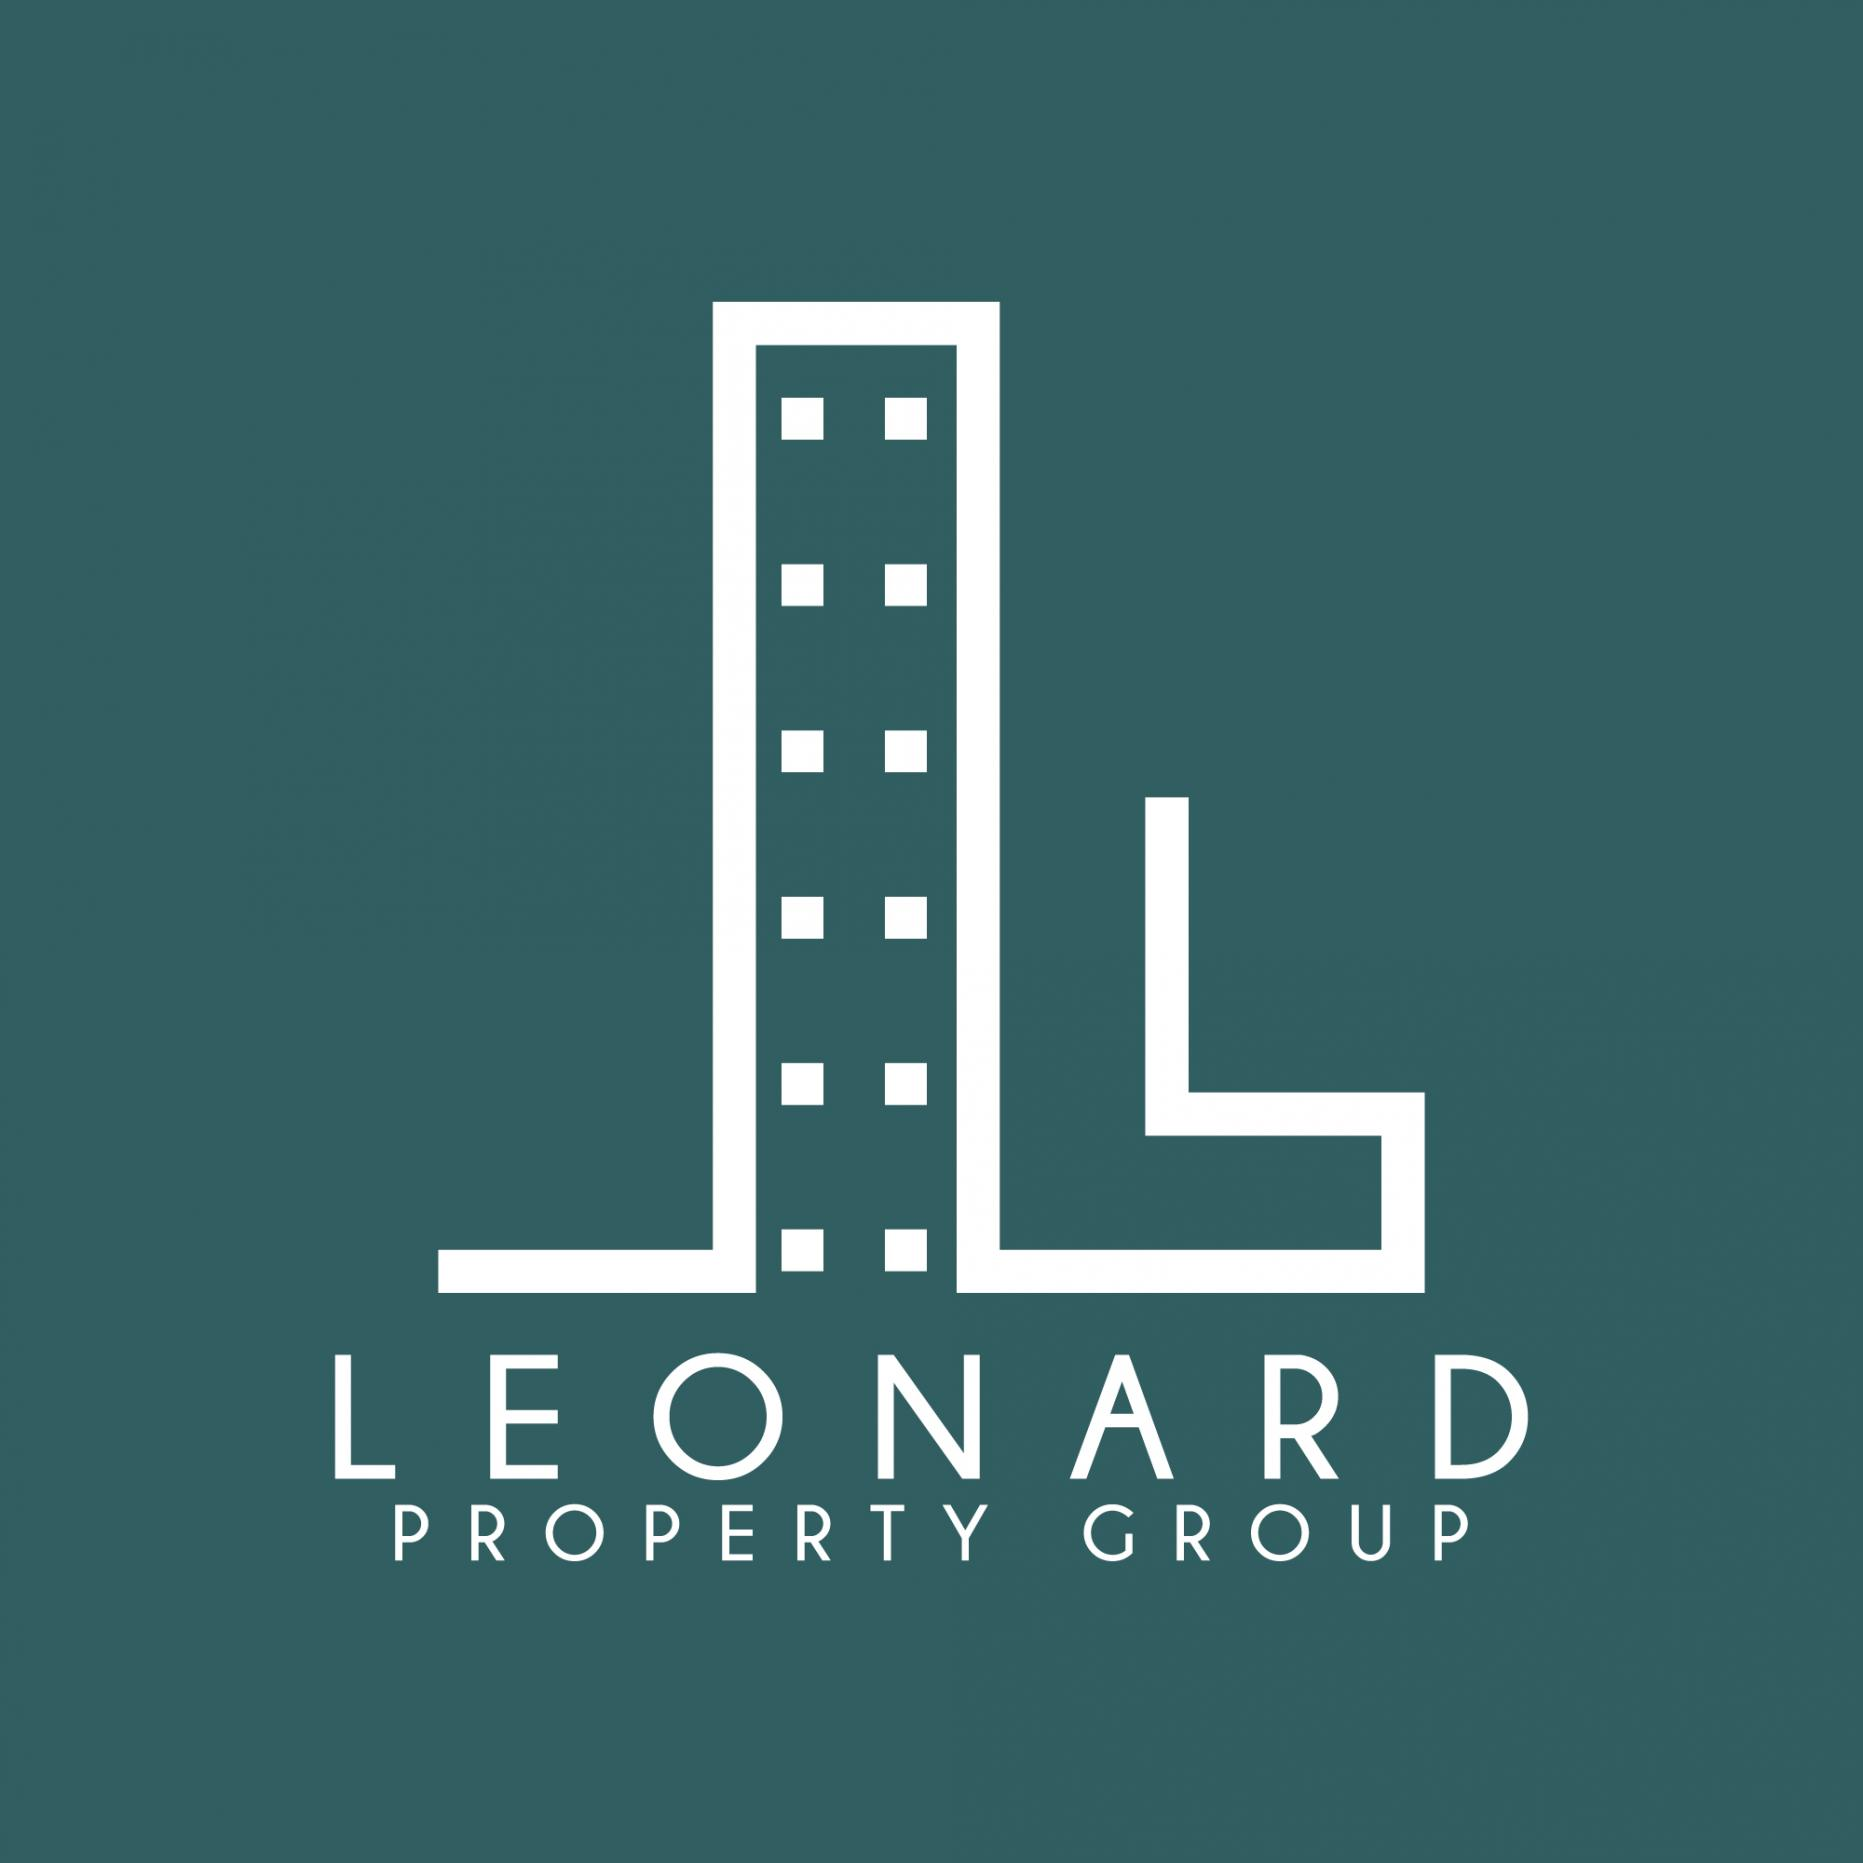 Leonard Property Group Logo